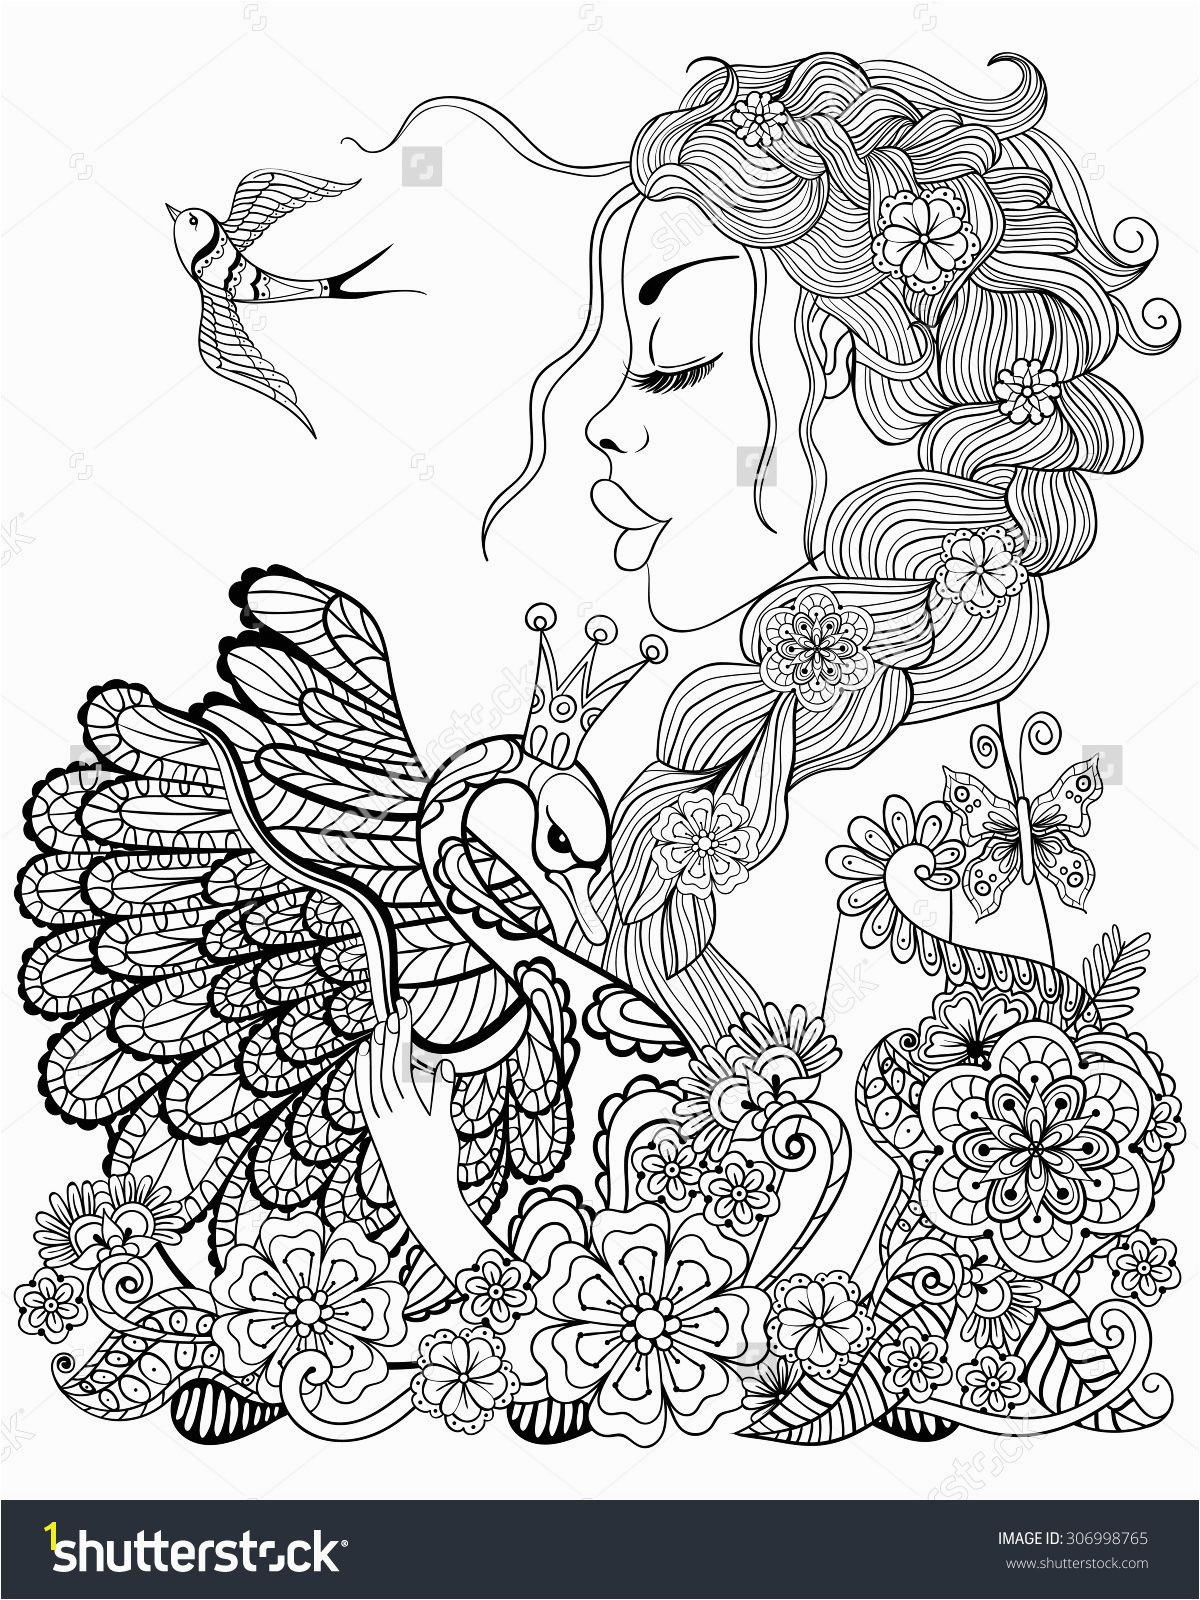 Cat Coloring Pages best coloring page